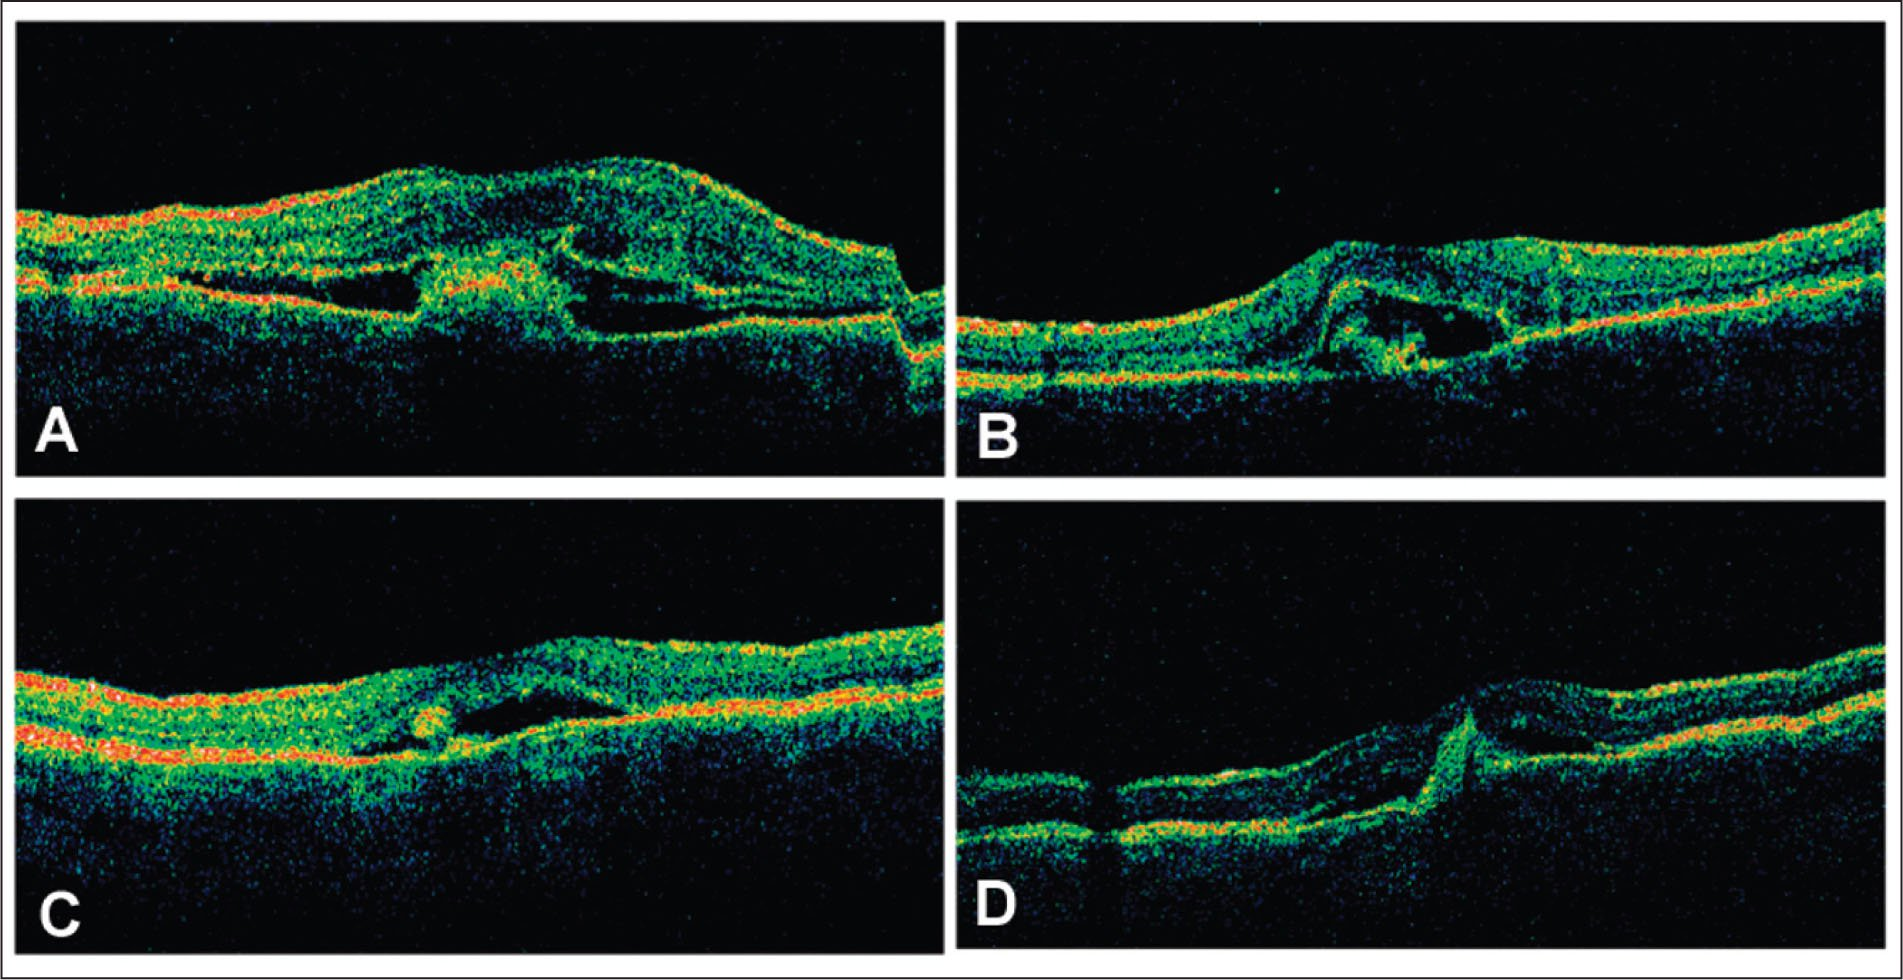 Treatment Of Choroidal Neovascularization Associated With